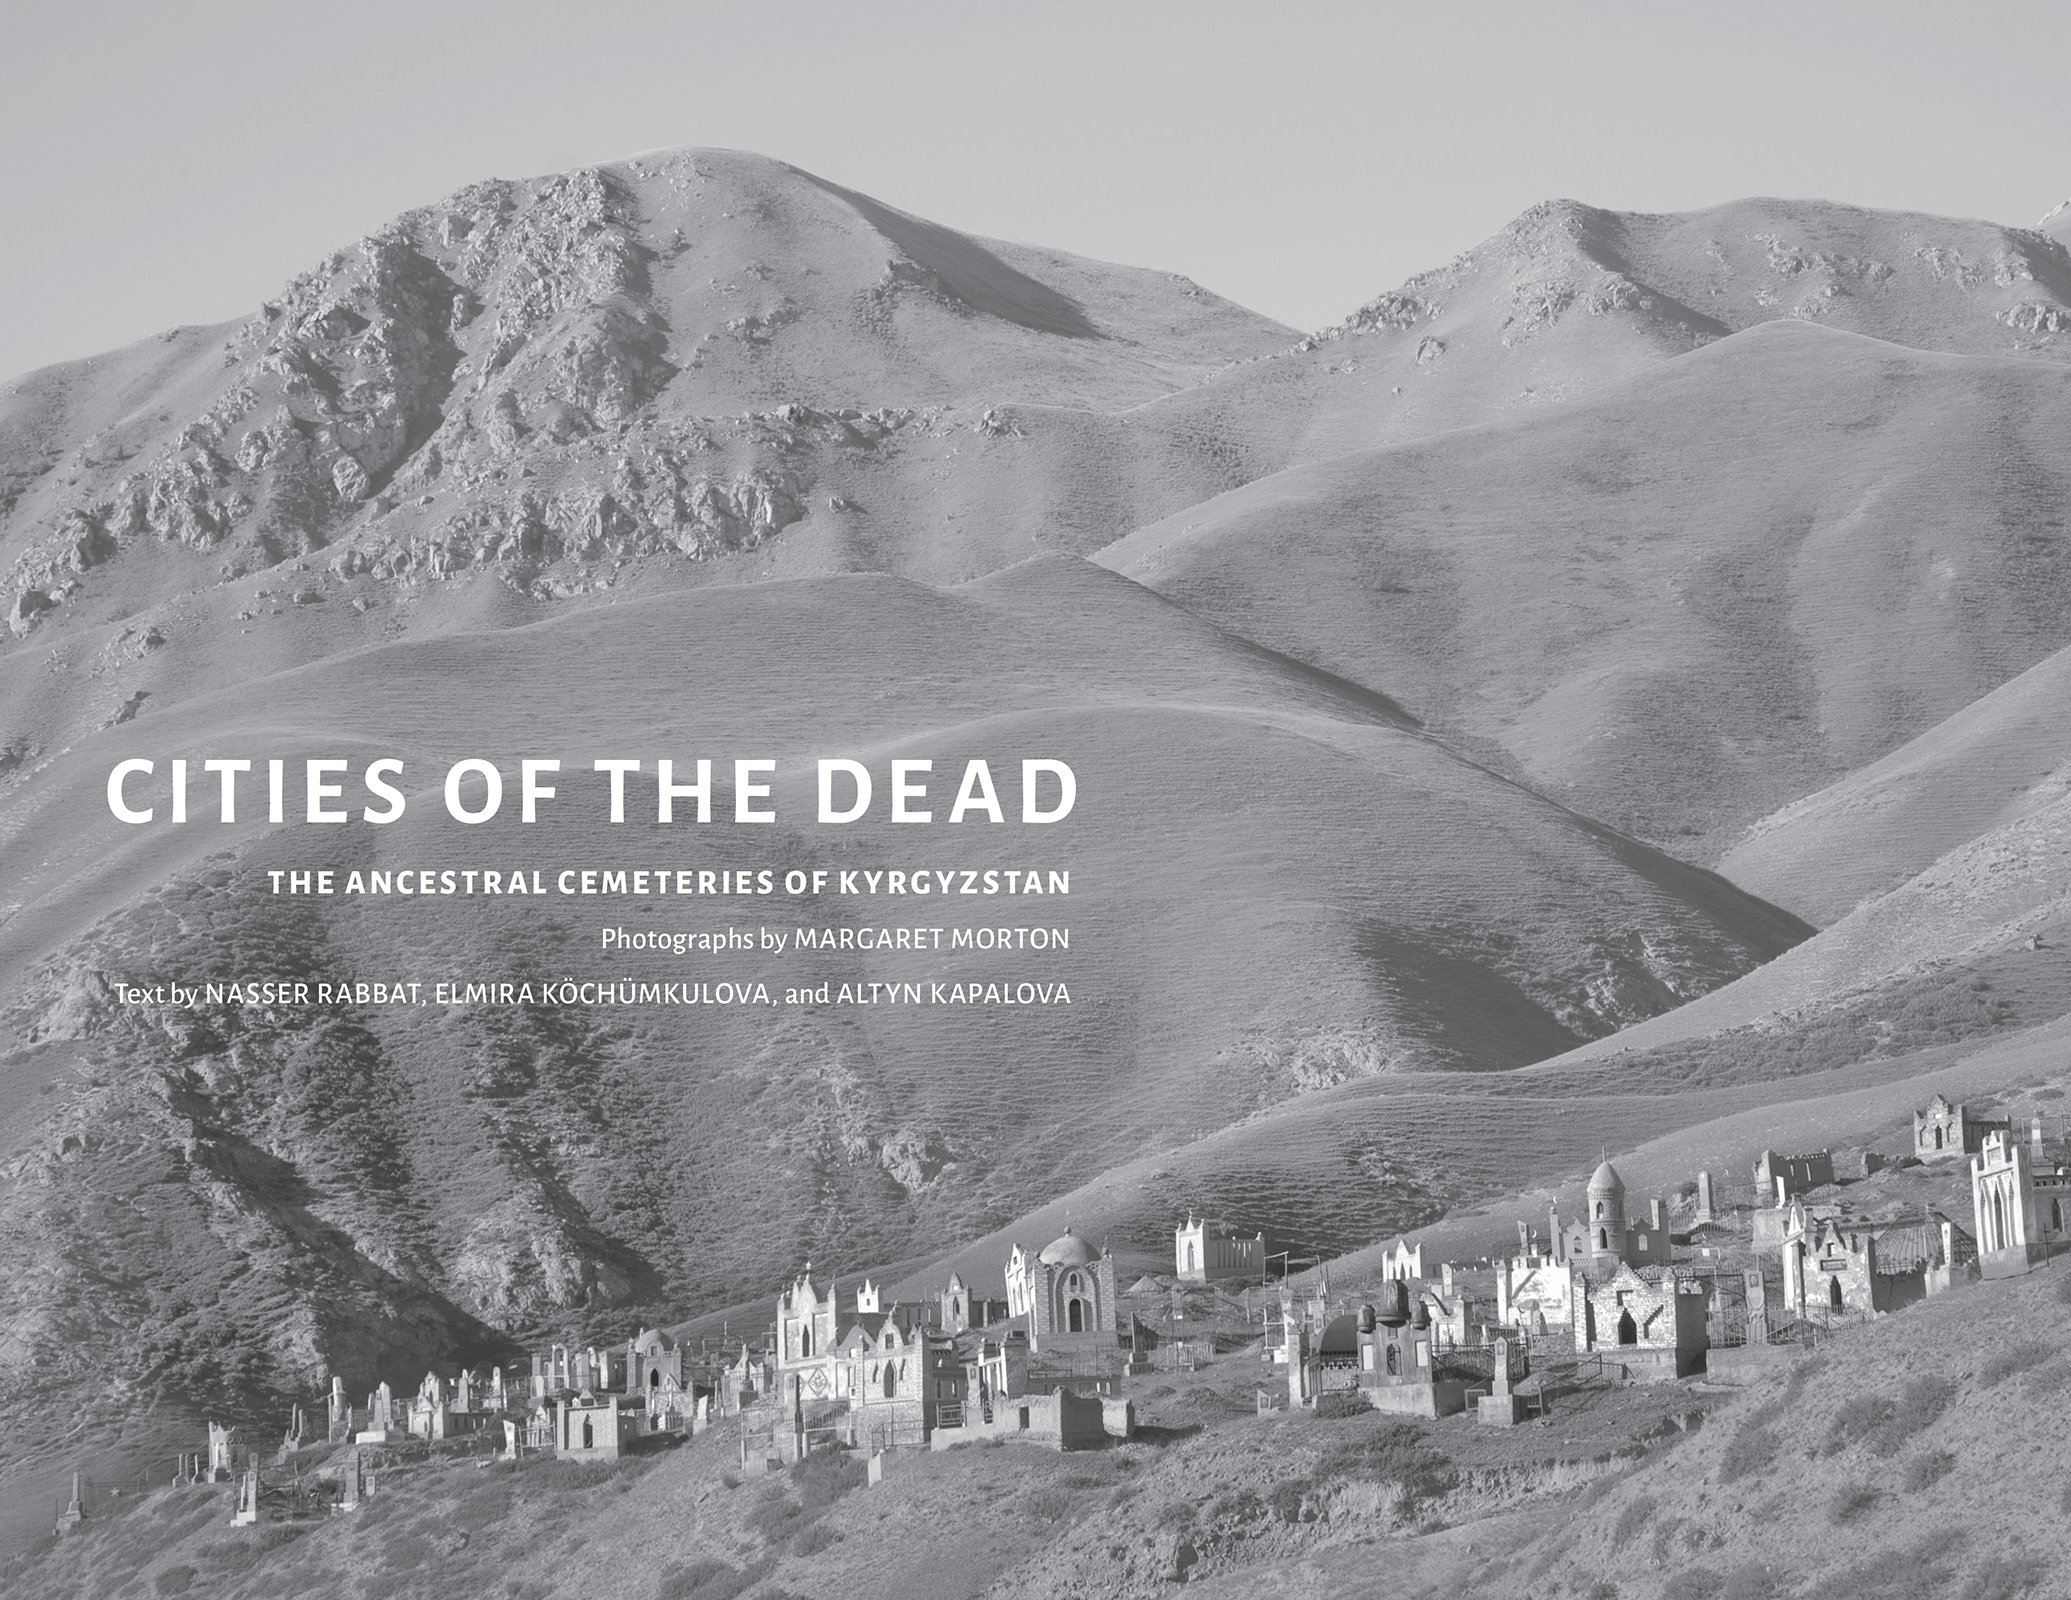 cities-of-the-dead-the-ancestral-cemeteries-of-kyrgyzstan